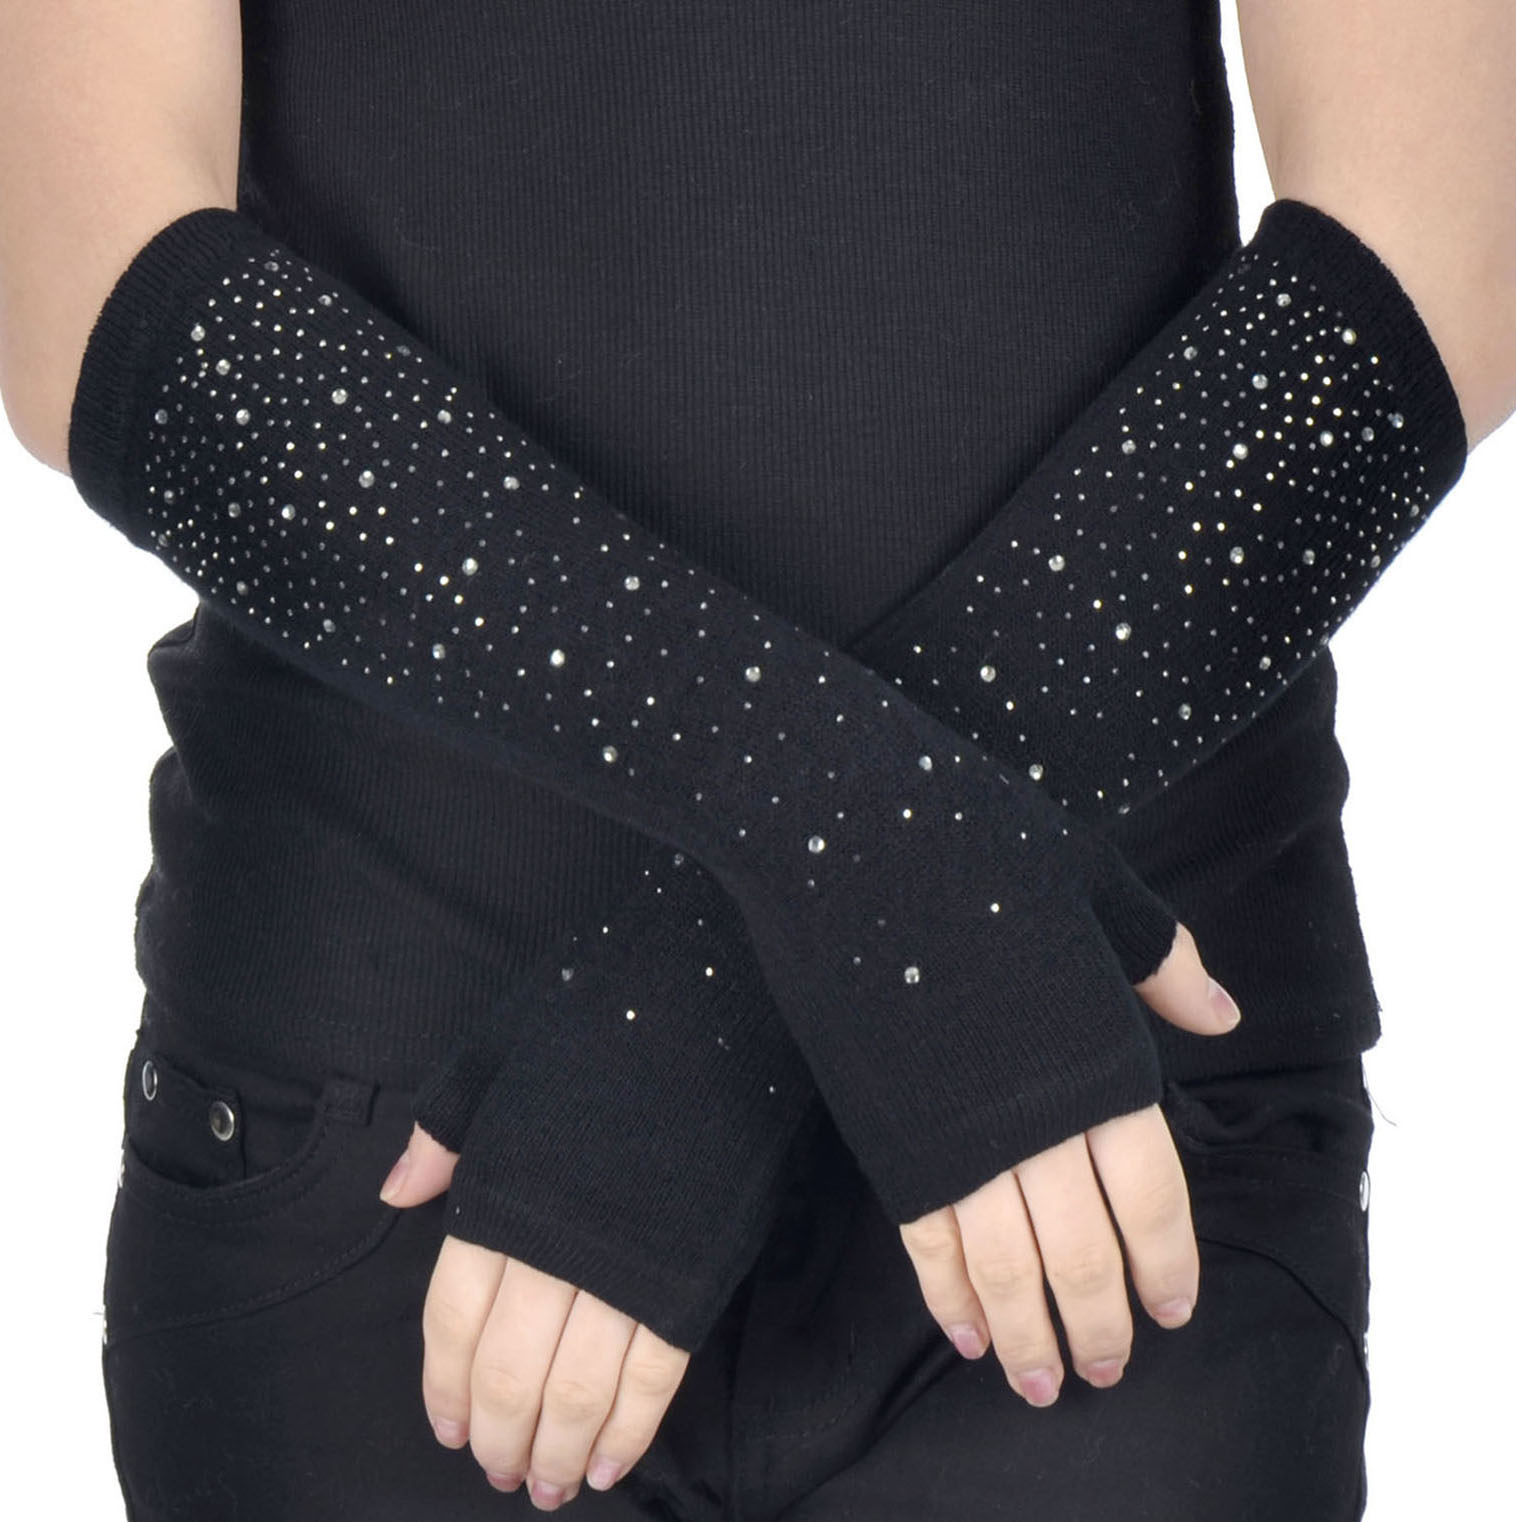 Simplicity Women's Long Knitting Stretchy Fingerless Gloves w/ Rhinestone, Black